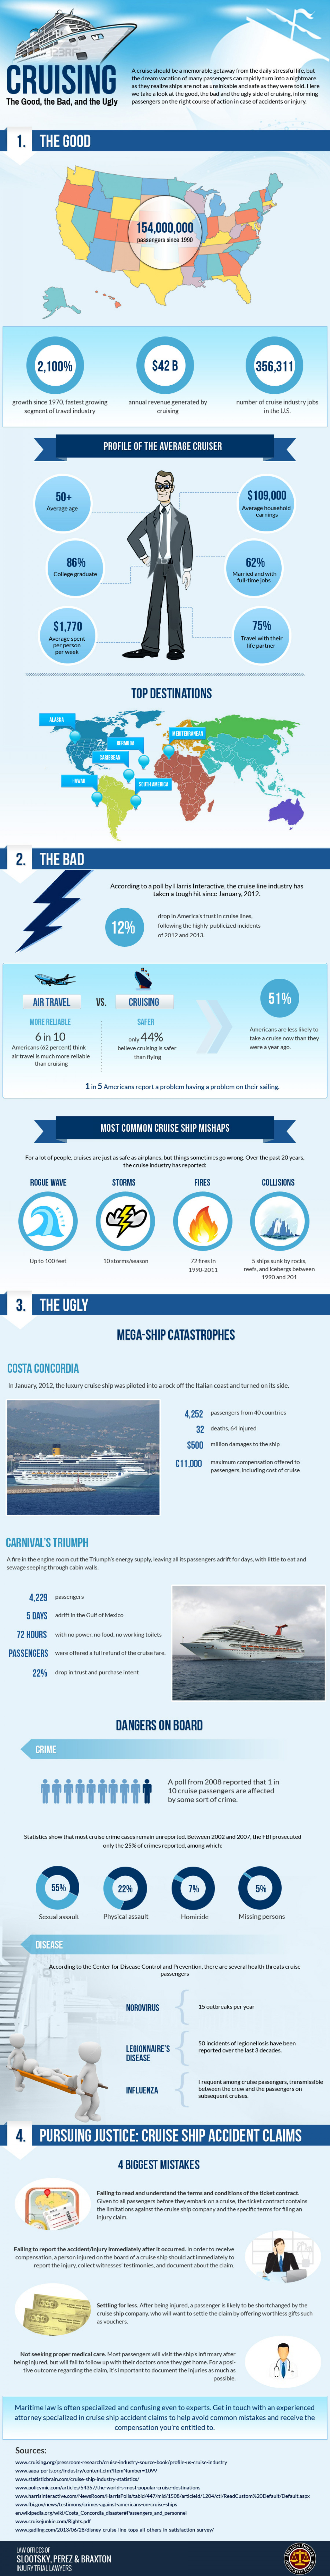 Cruising: The Good, the Bad and the Ugly Infographic